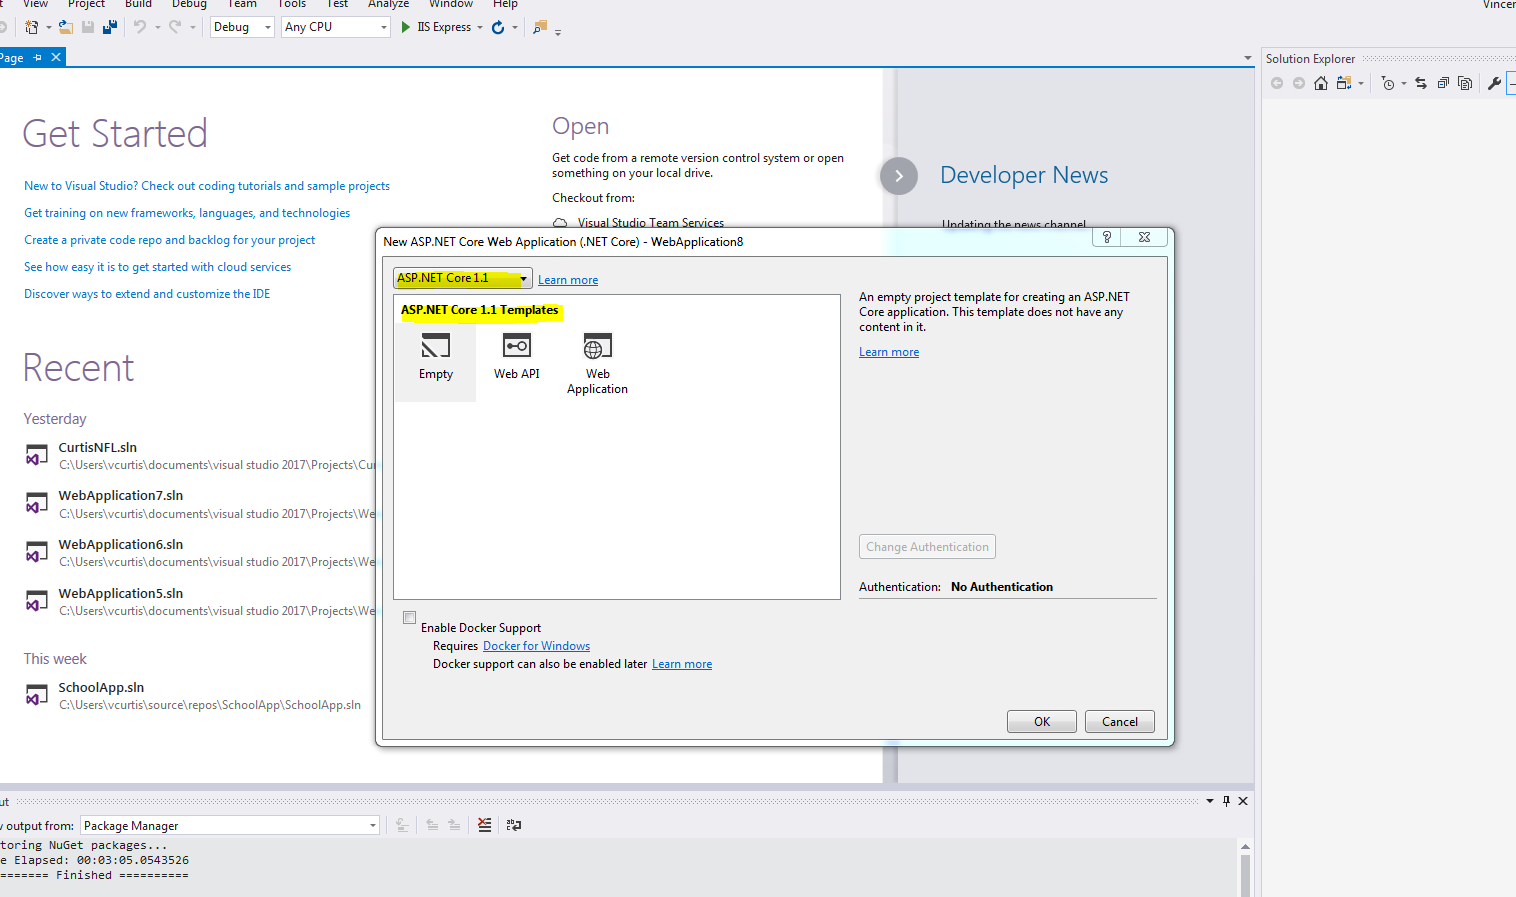 Having Issues Populating Aps Core 21 In The Template Even